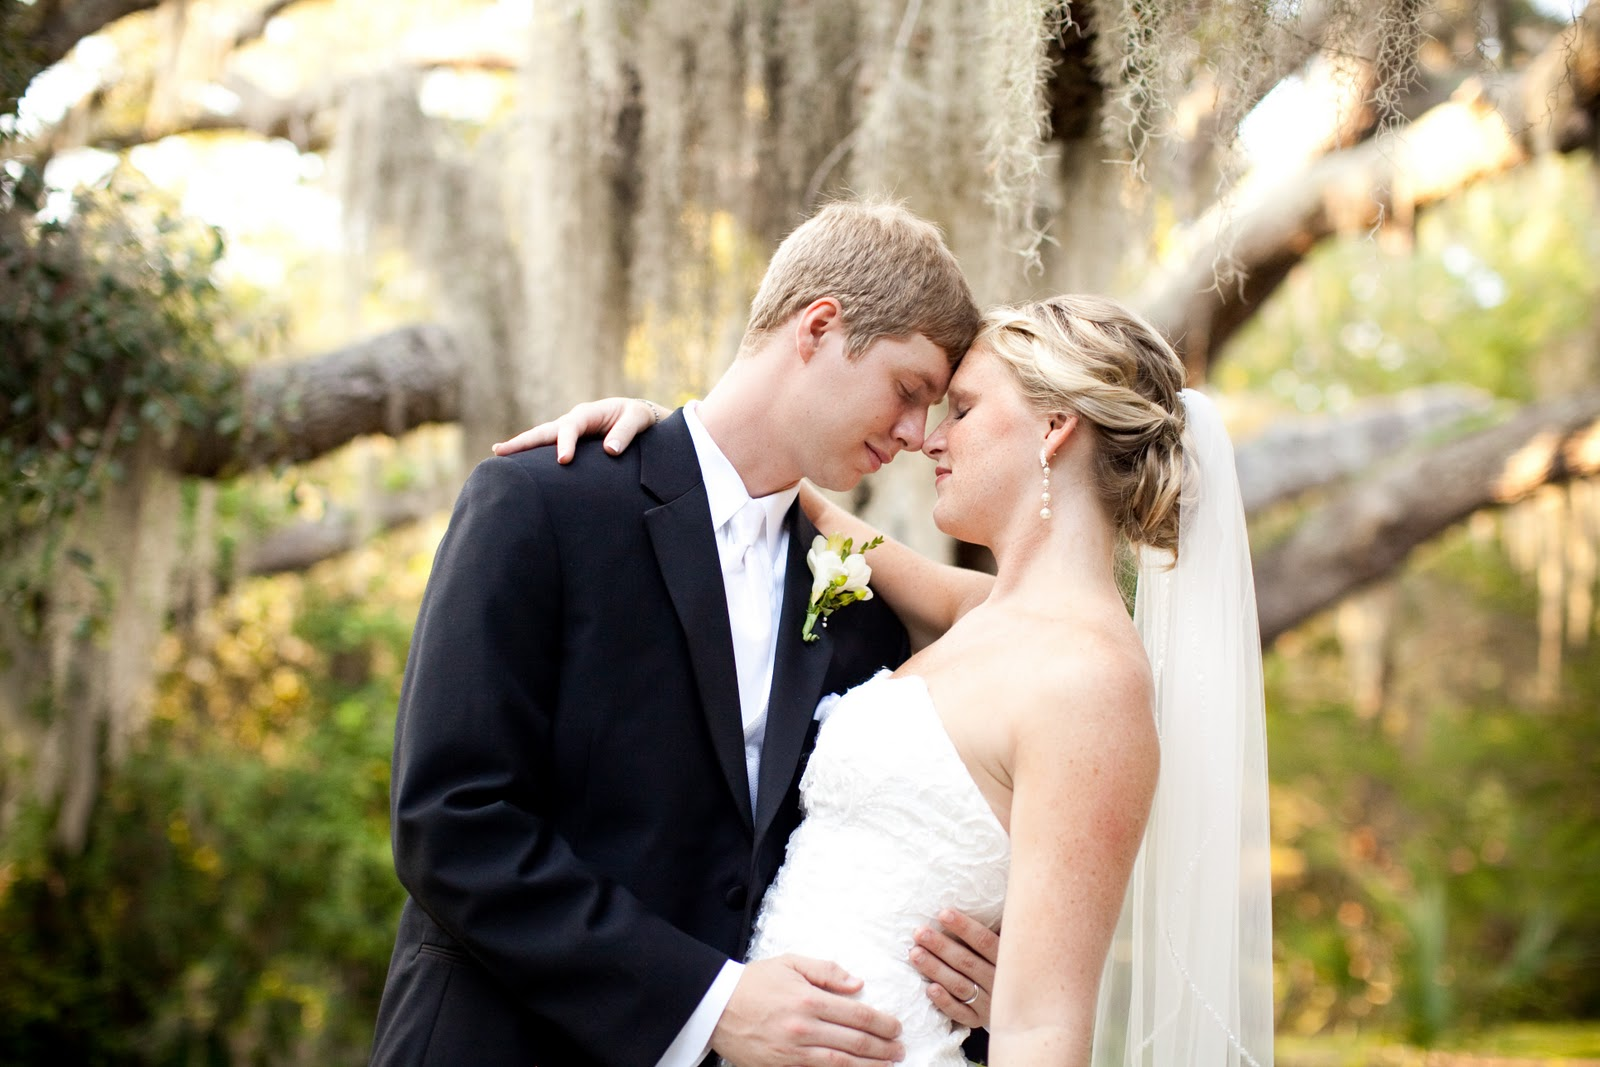 Jennifer chris honey horn plantation wedding a lowcountry a lowcountry wedding blog featuring charleston weddings hilton head weddings myrtle beach weddings junglespirit Image collections